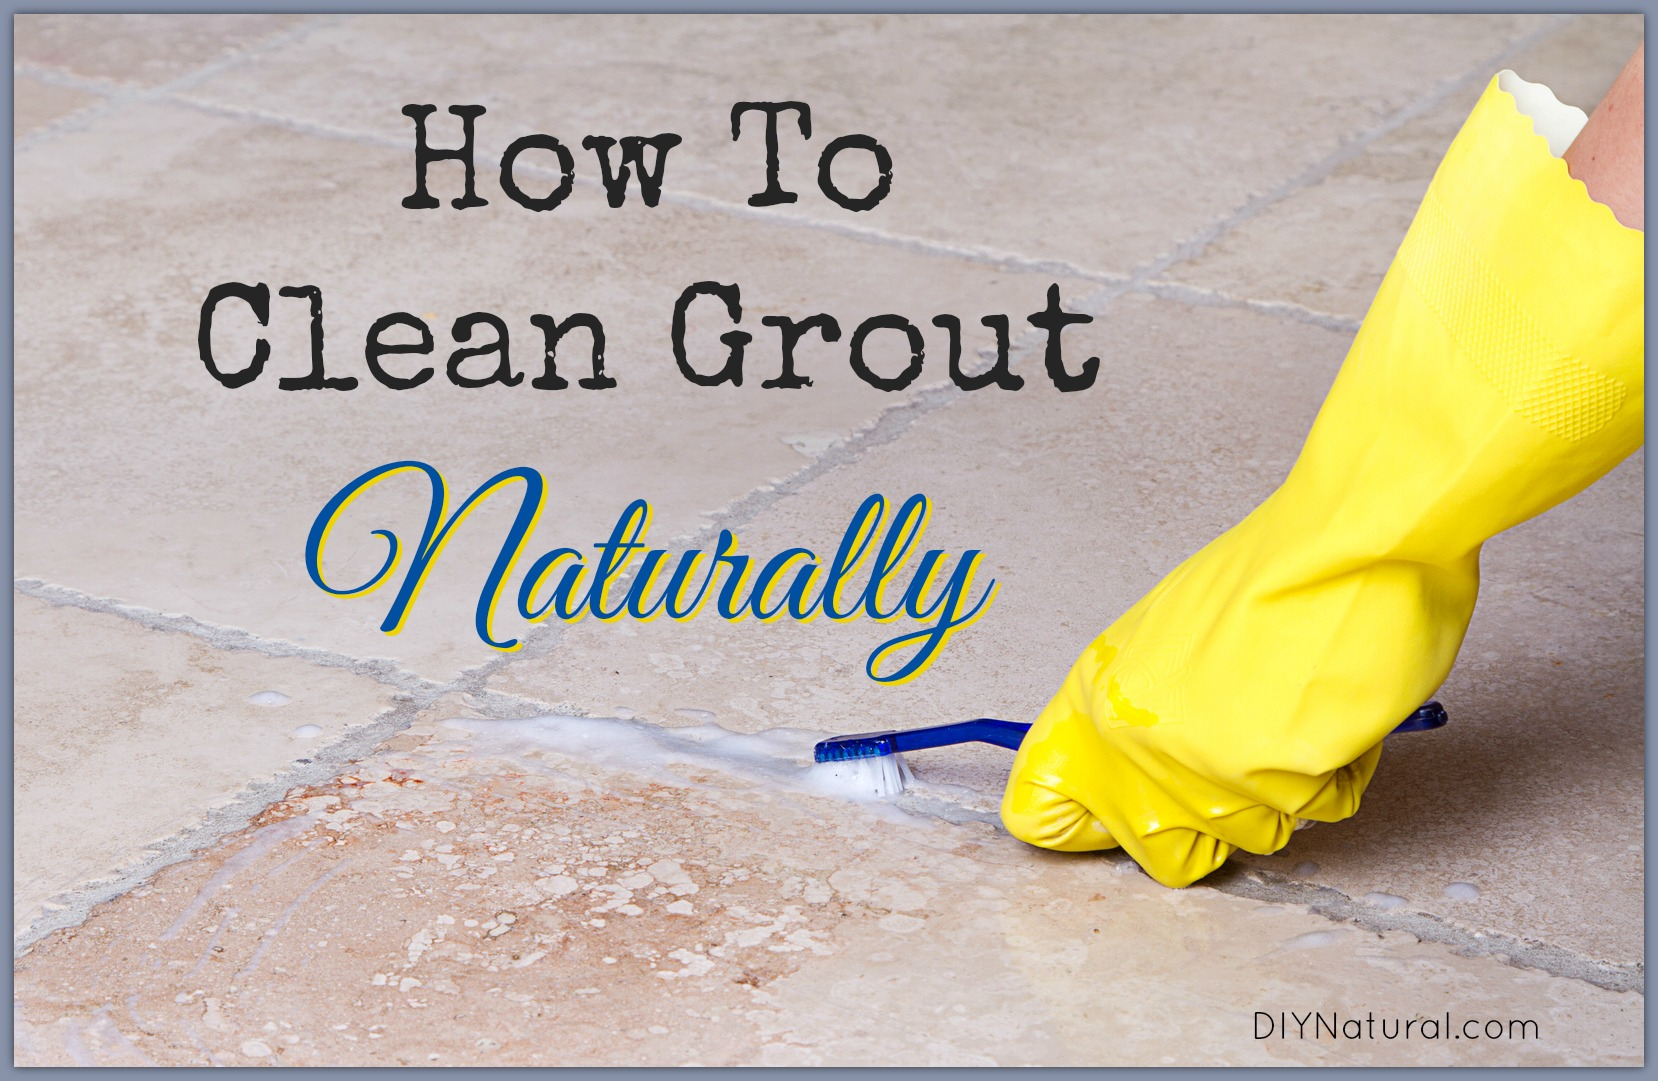 Best Way To Clean Bathroom How To Clean Grout A Natural Diy Grout Cleaner That Works Great